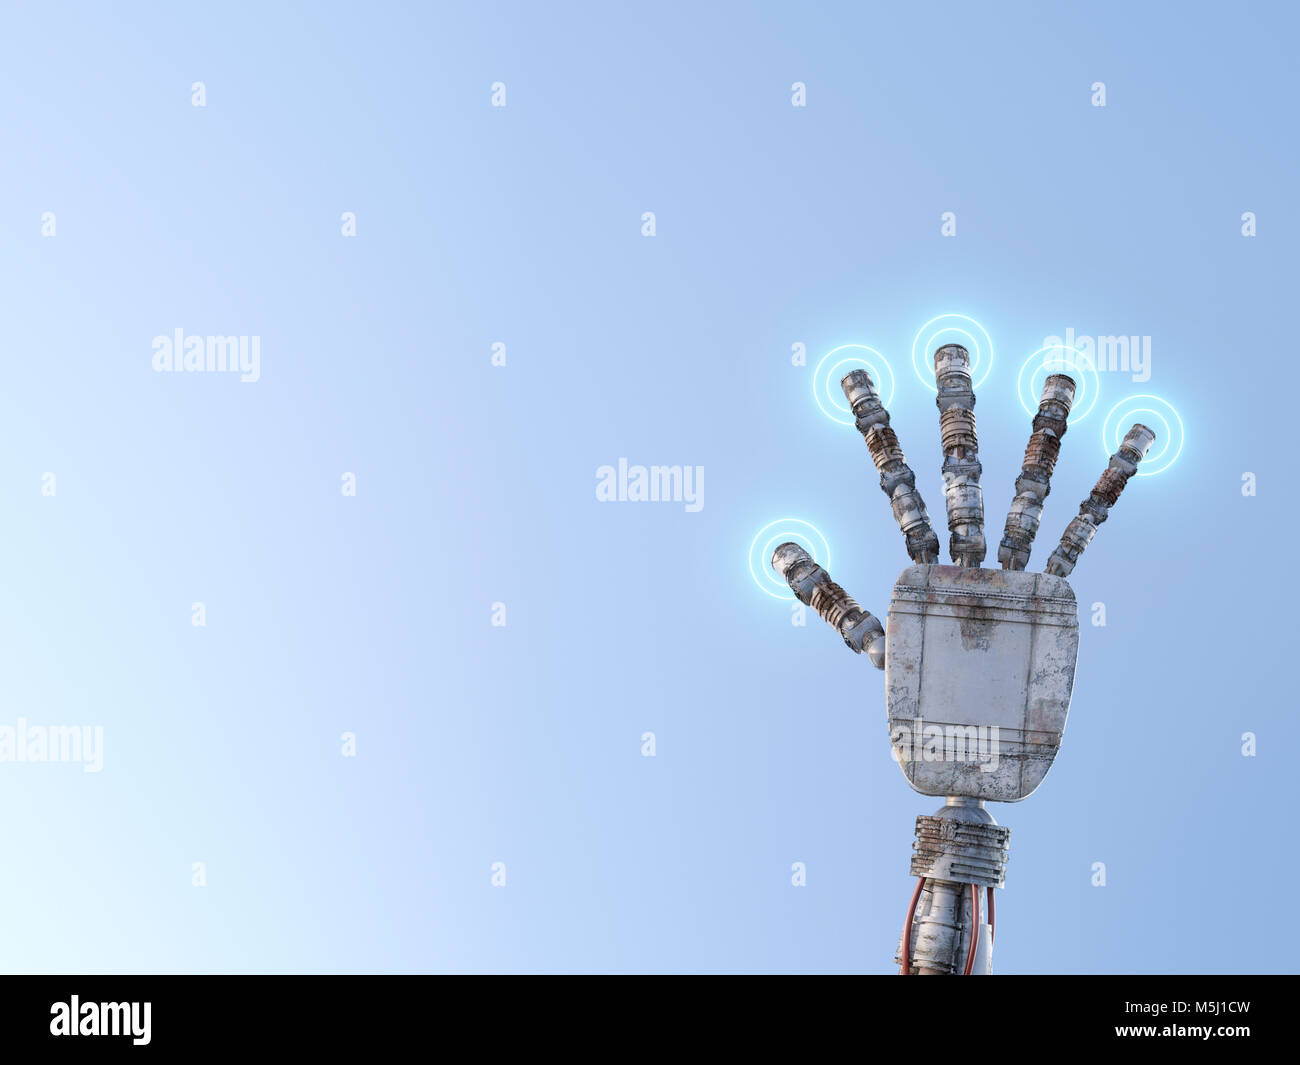 Robot hand pressing illuminated buttons - Stock Image